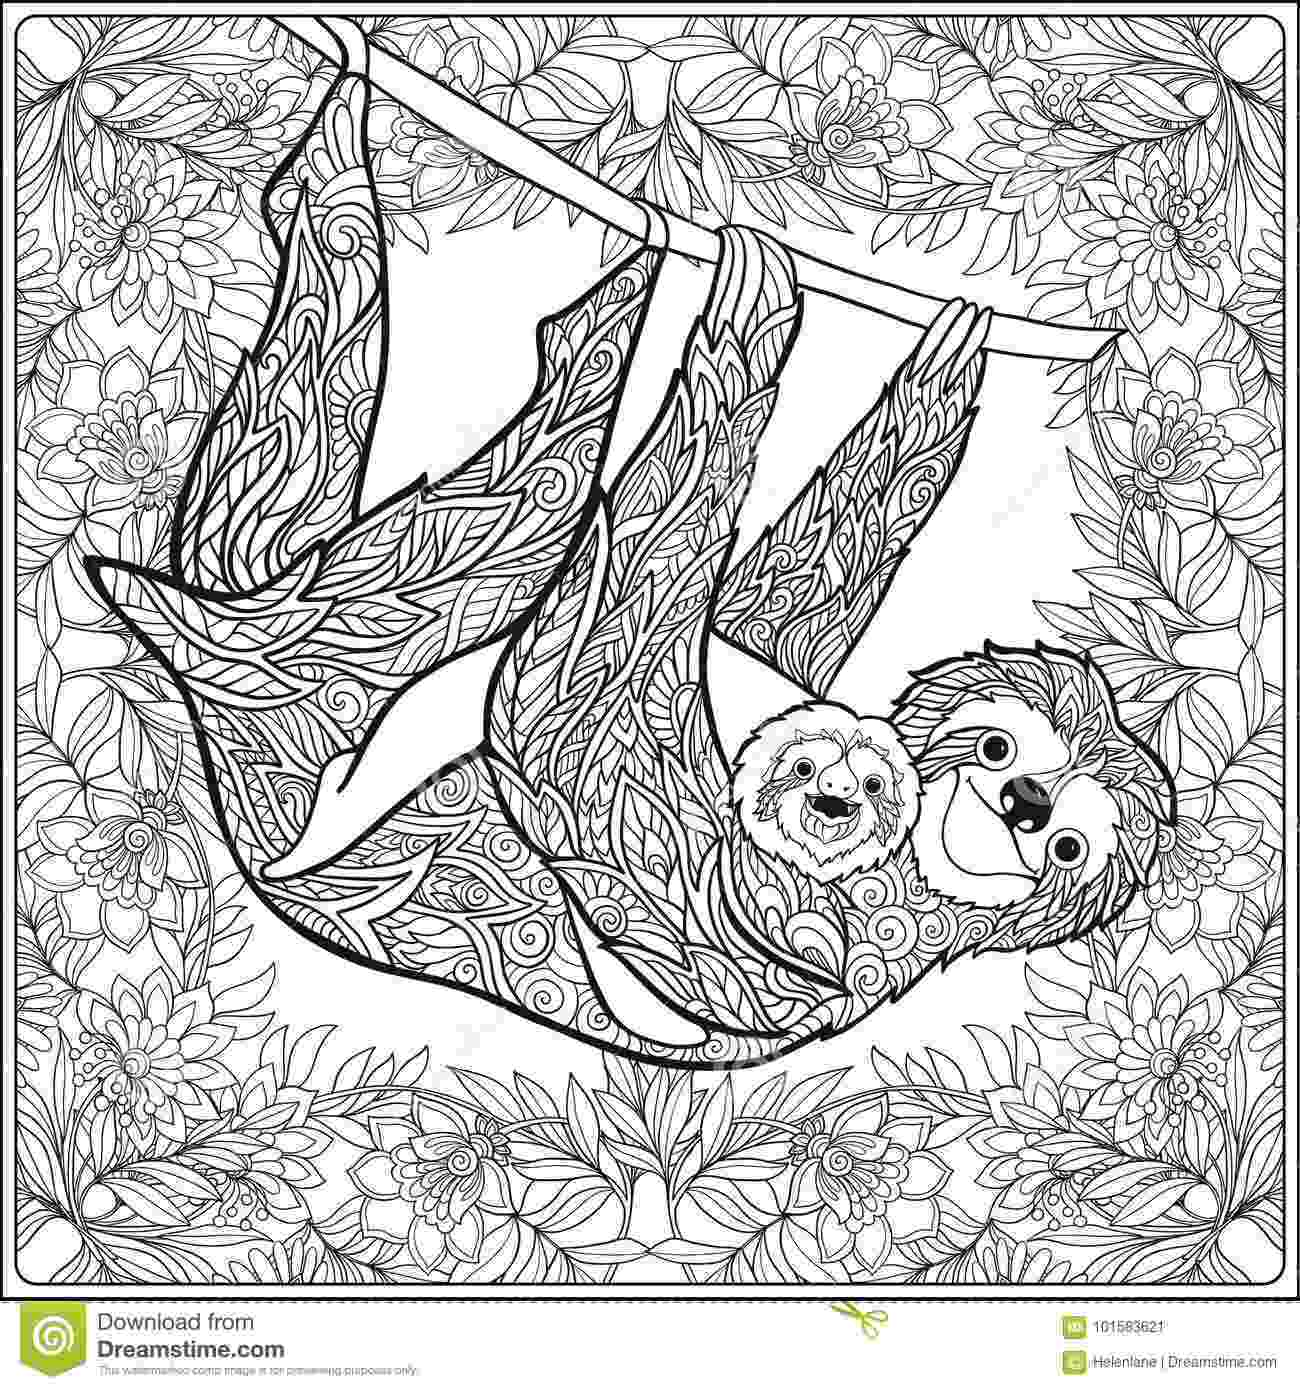 animal colouring pages for older children animal coloring pages for older children at getdrawings for pages animal older colouring children